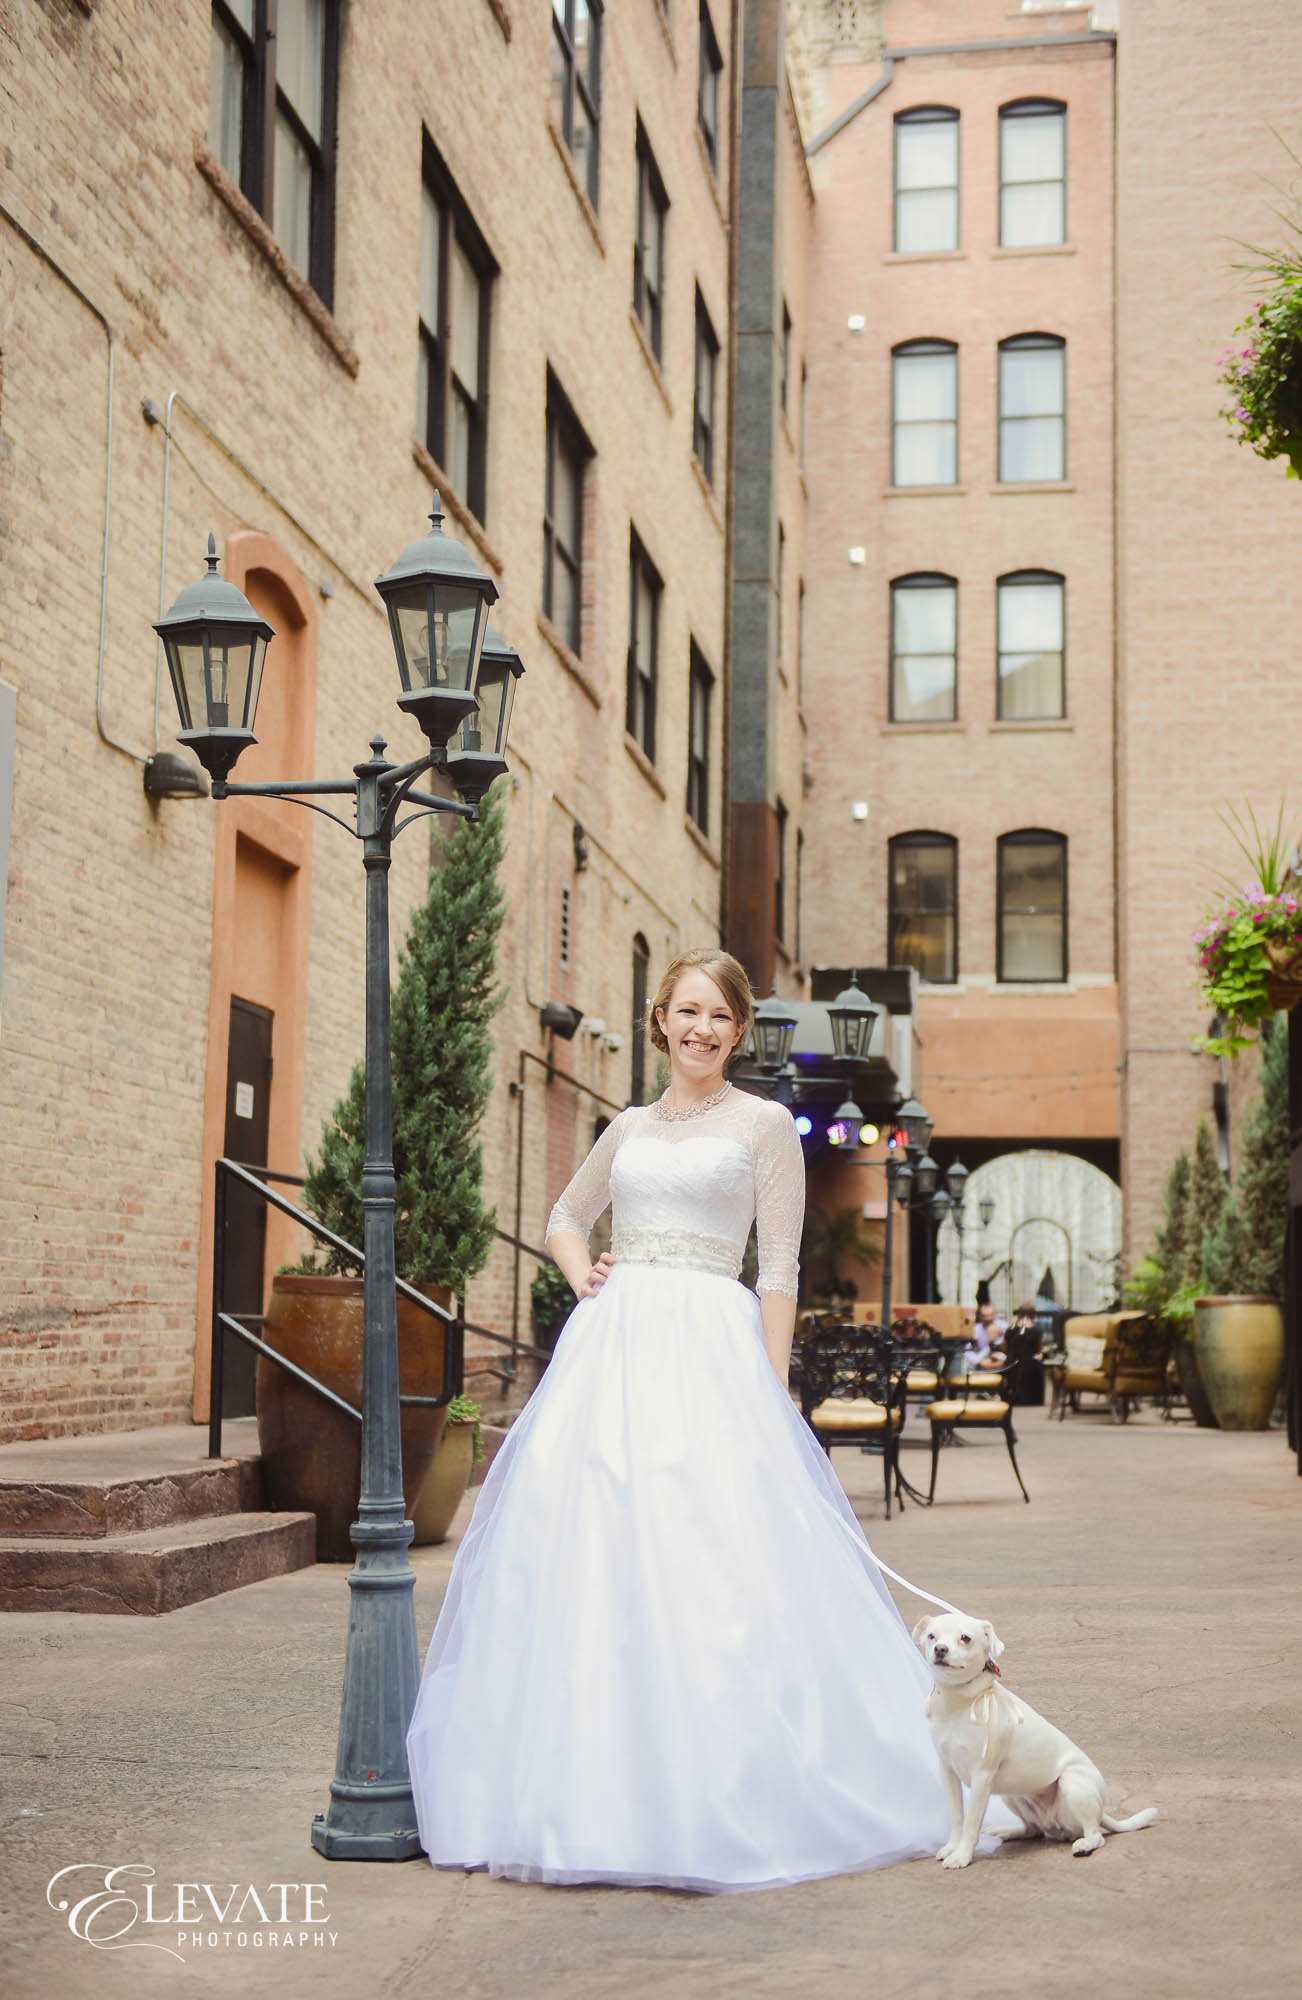 Wedding Dress Cleaning And Preservation Colorado Springs